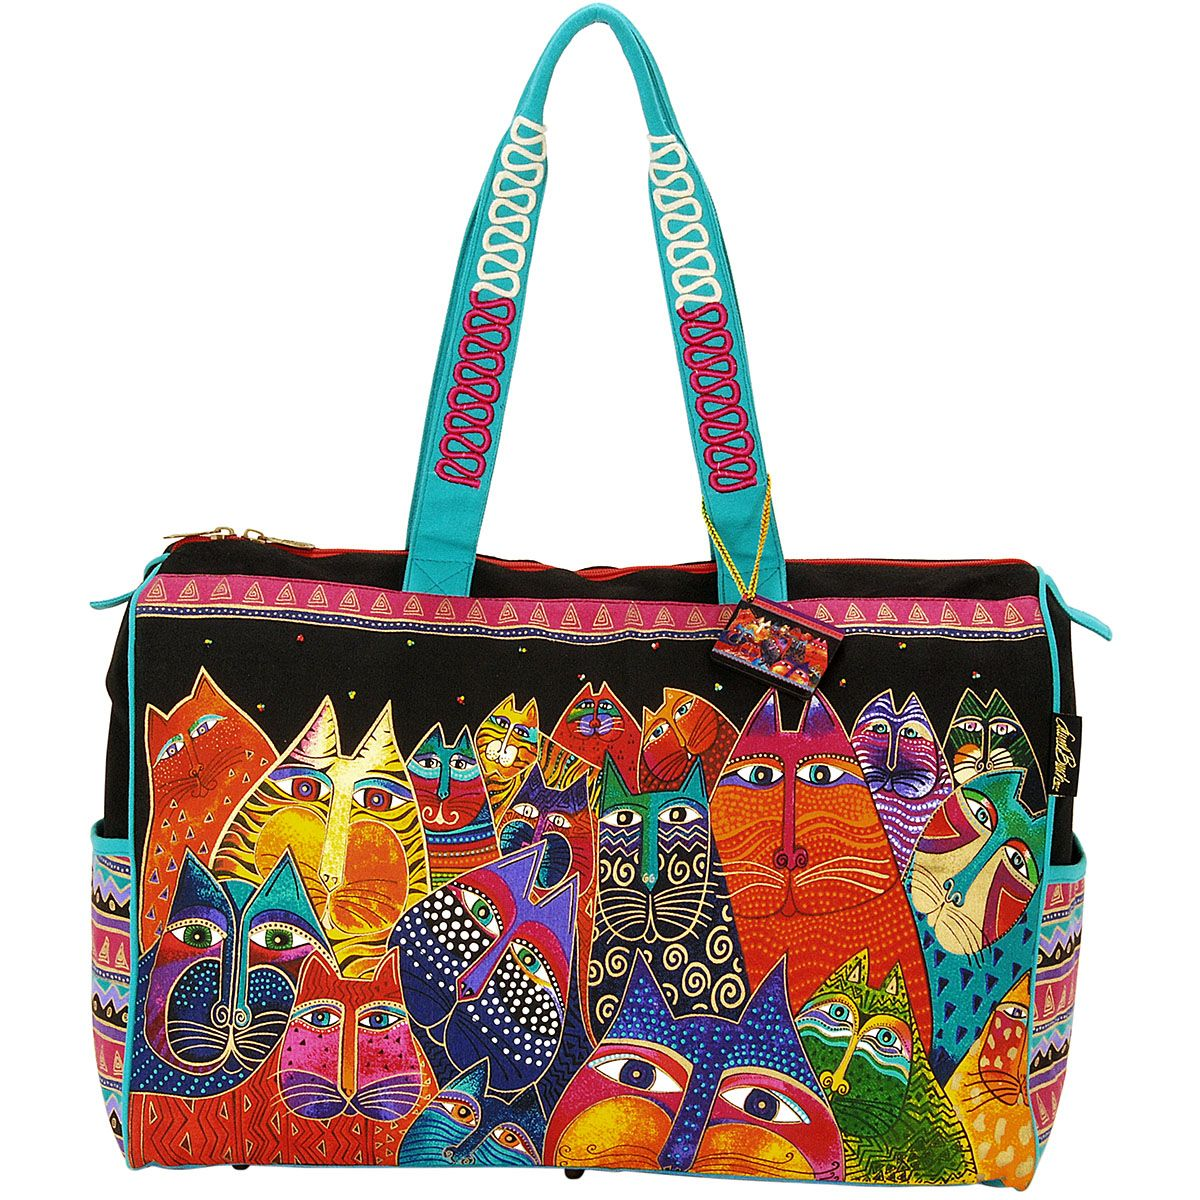 Laurel Burch Travel Bag Zipper Top 21x8x16 Fantasticats | JOANN